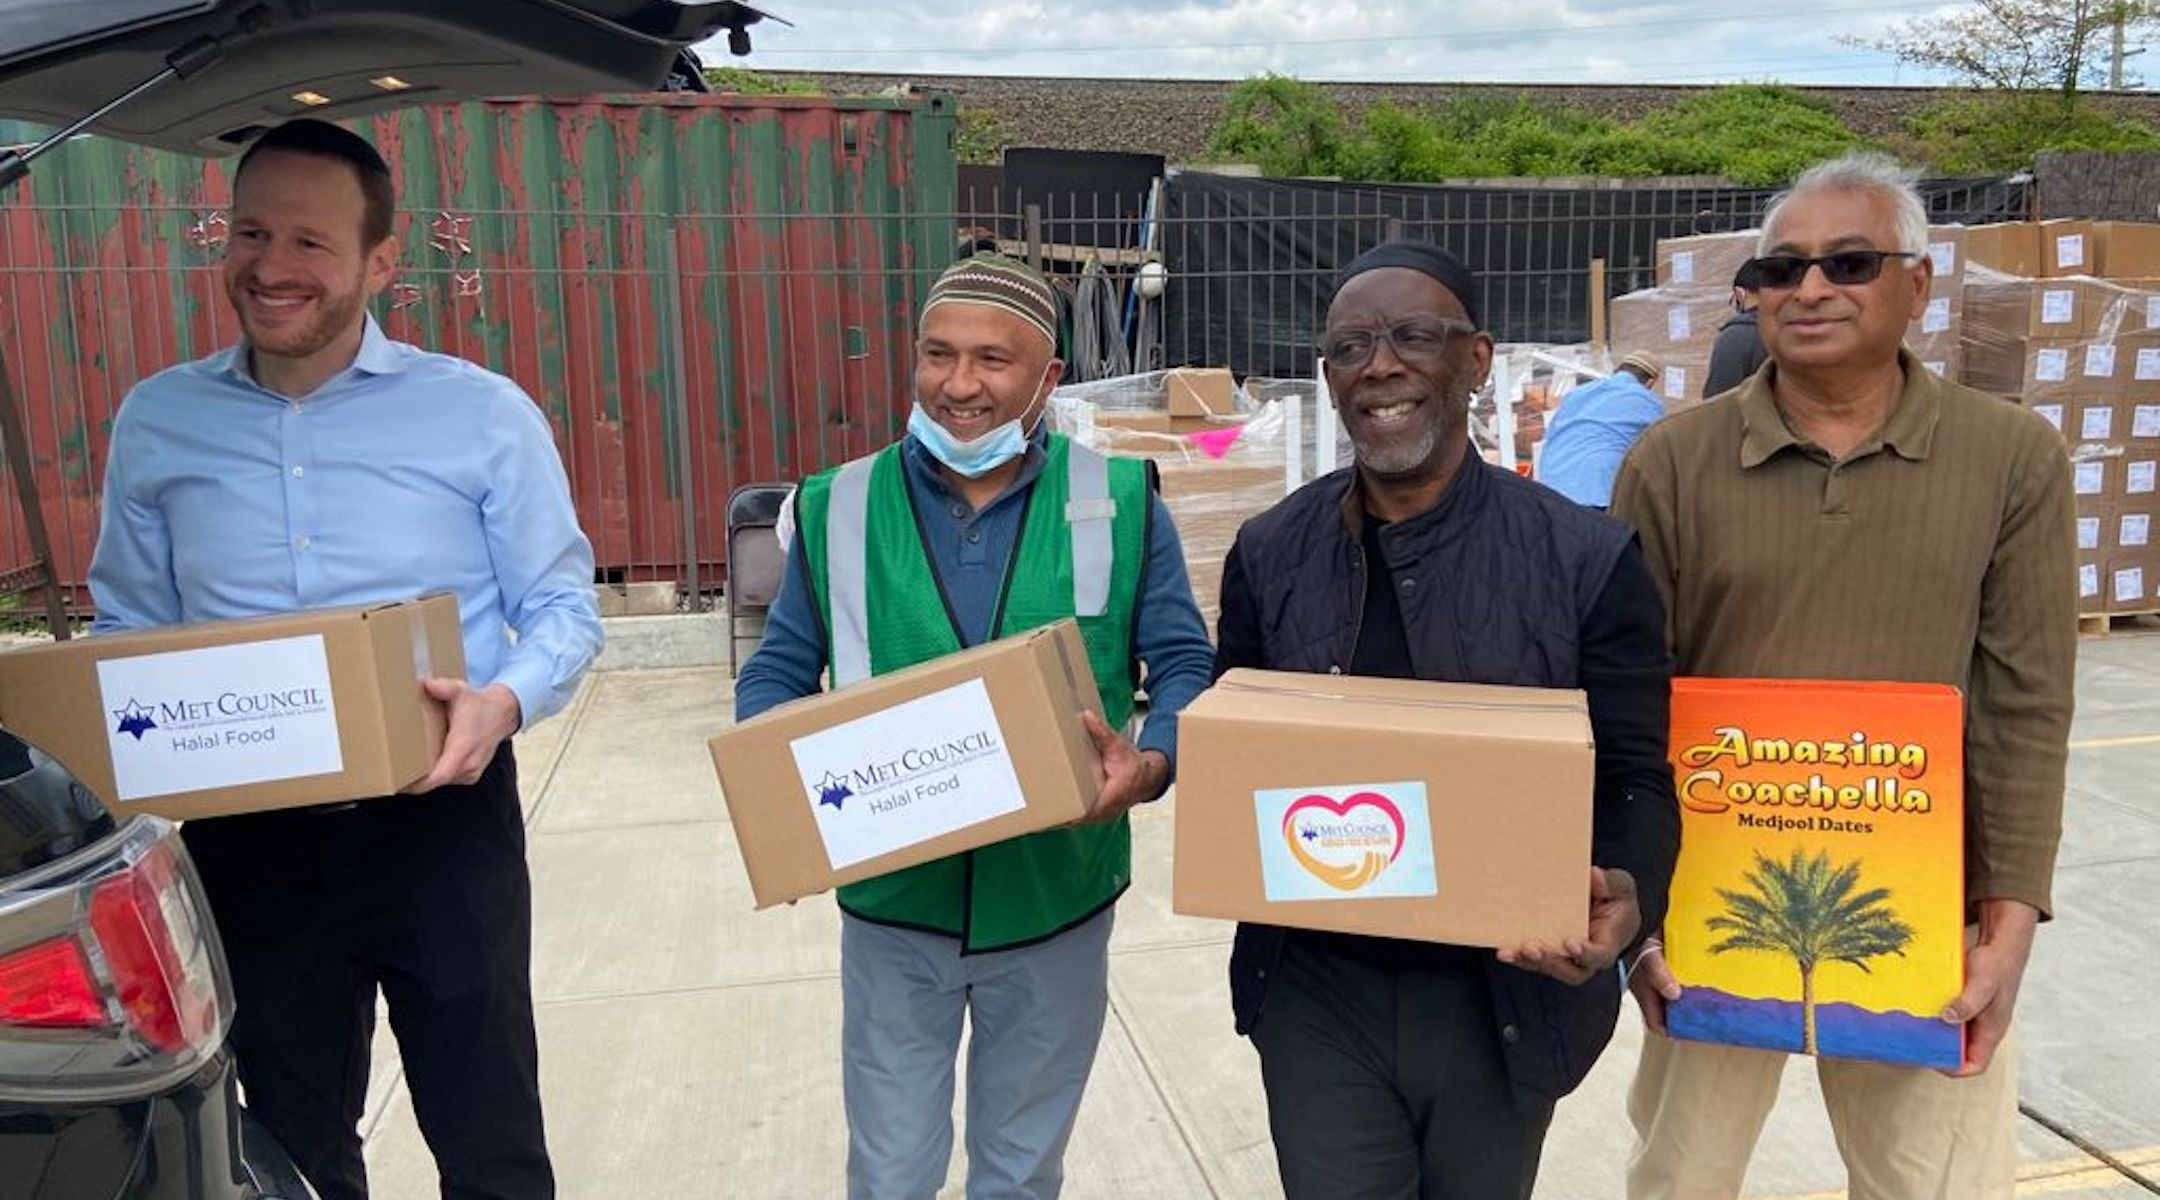 Jewish nonprofit distributes 1,500 boxes of halal food for Ramadan, including pricey dates